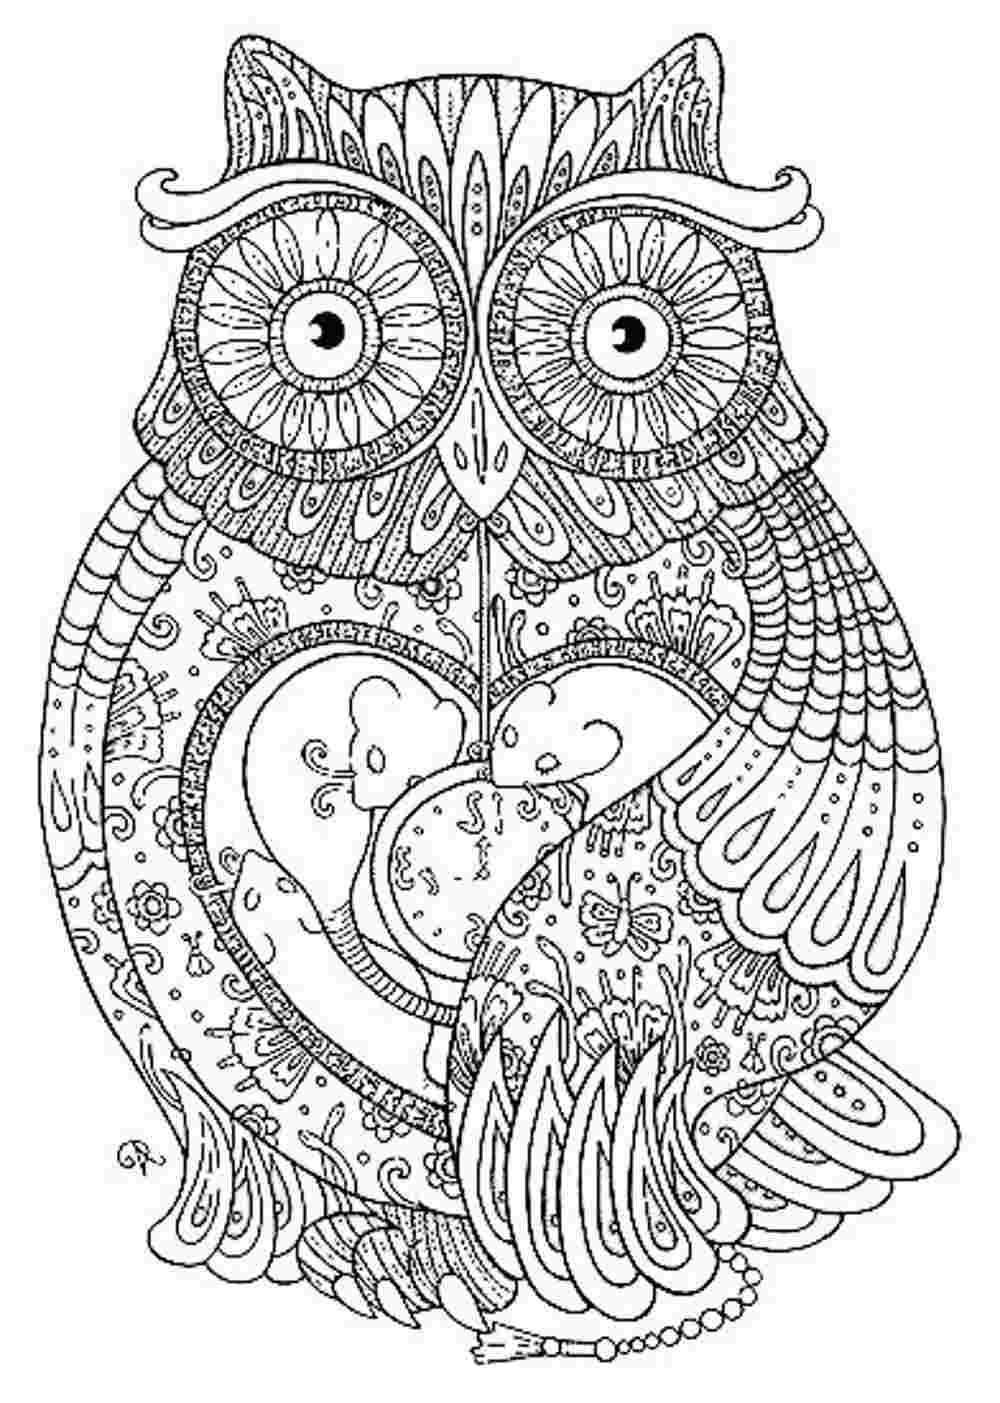 animal coloring printable toddler coloring pages for kids coloring animal